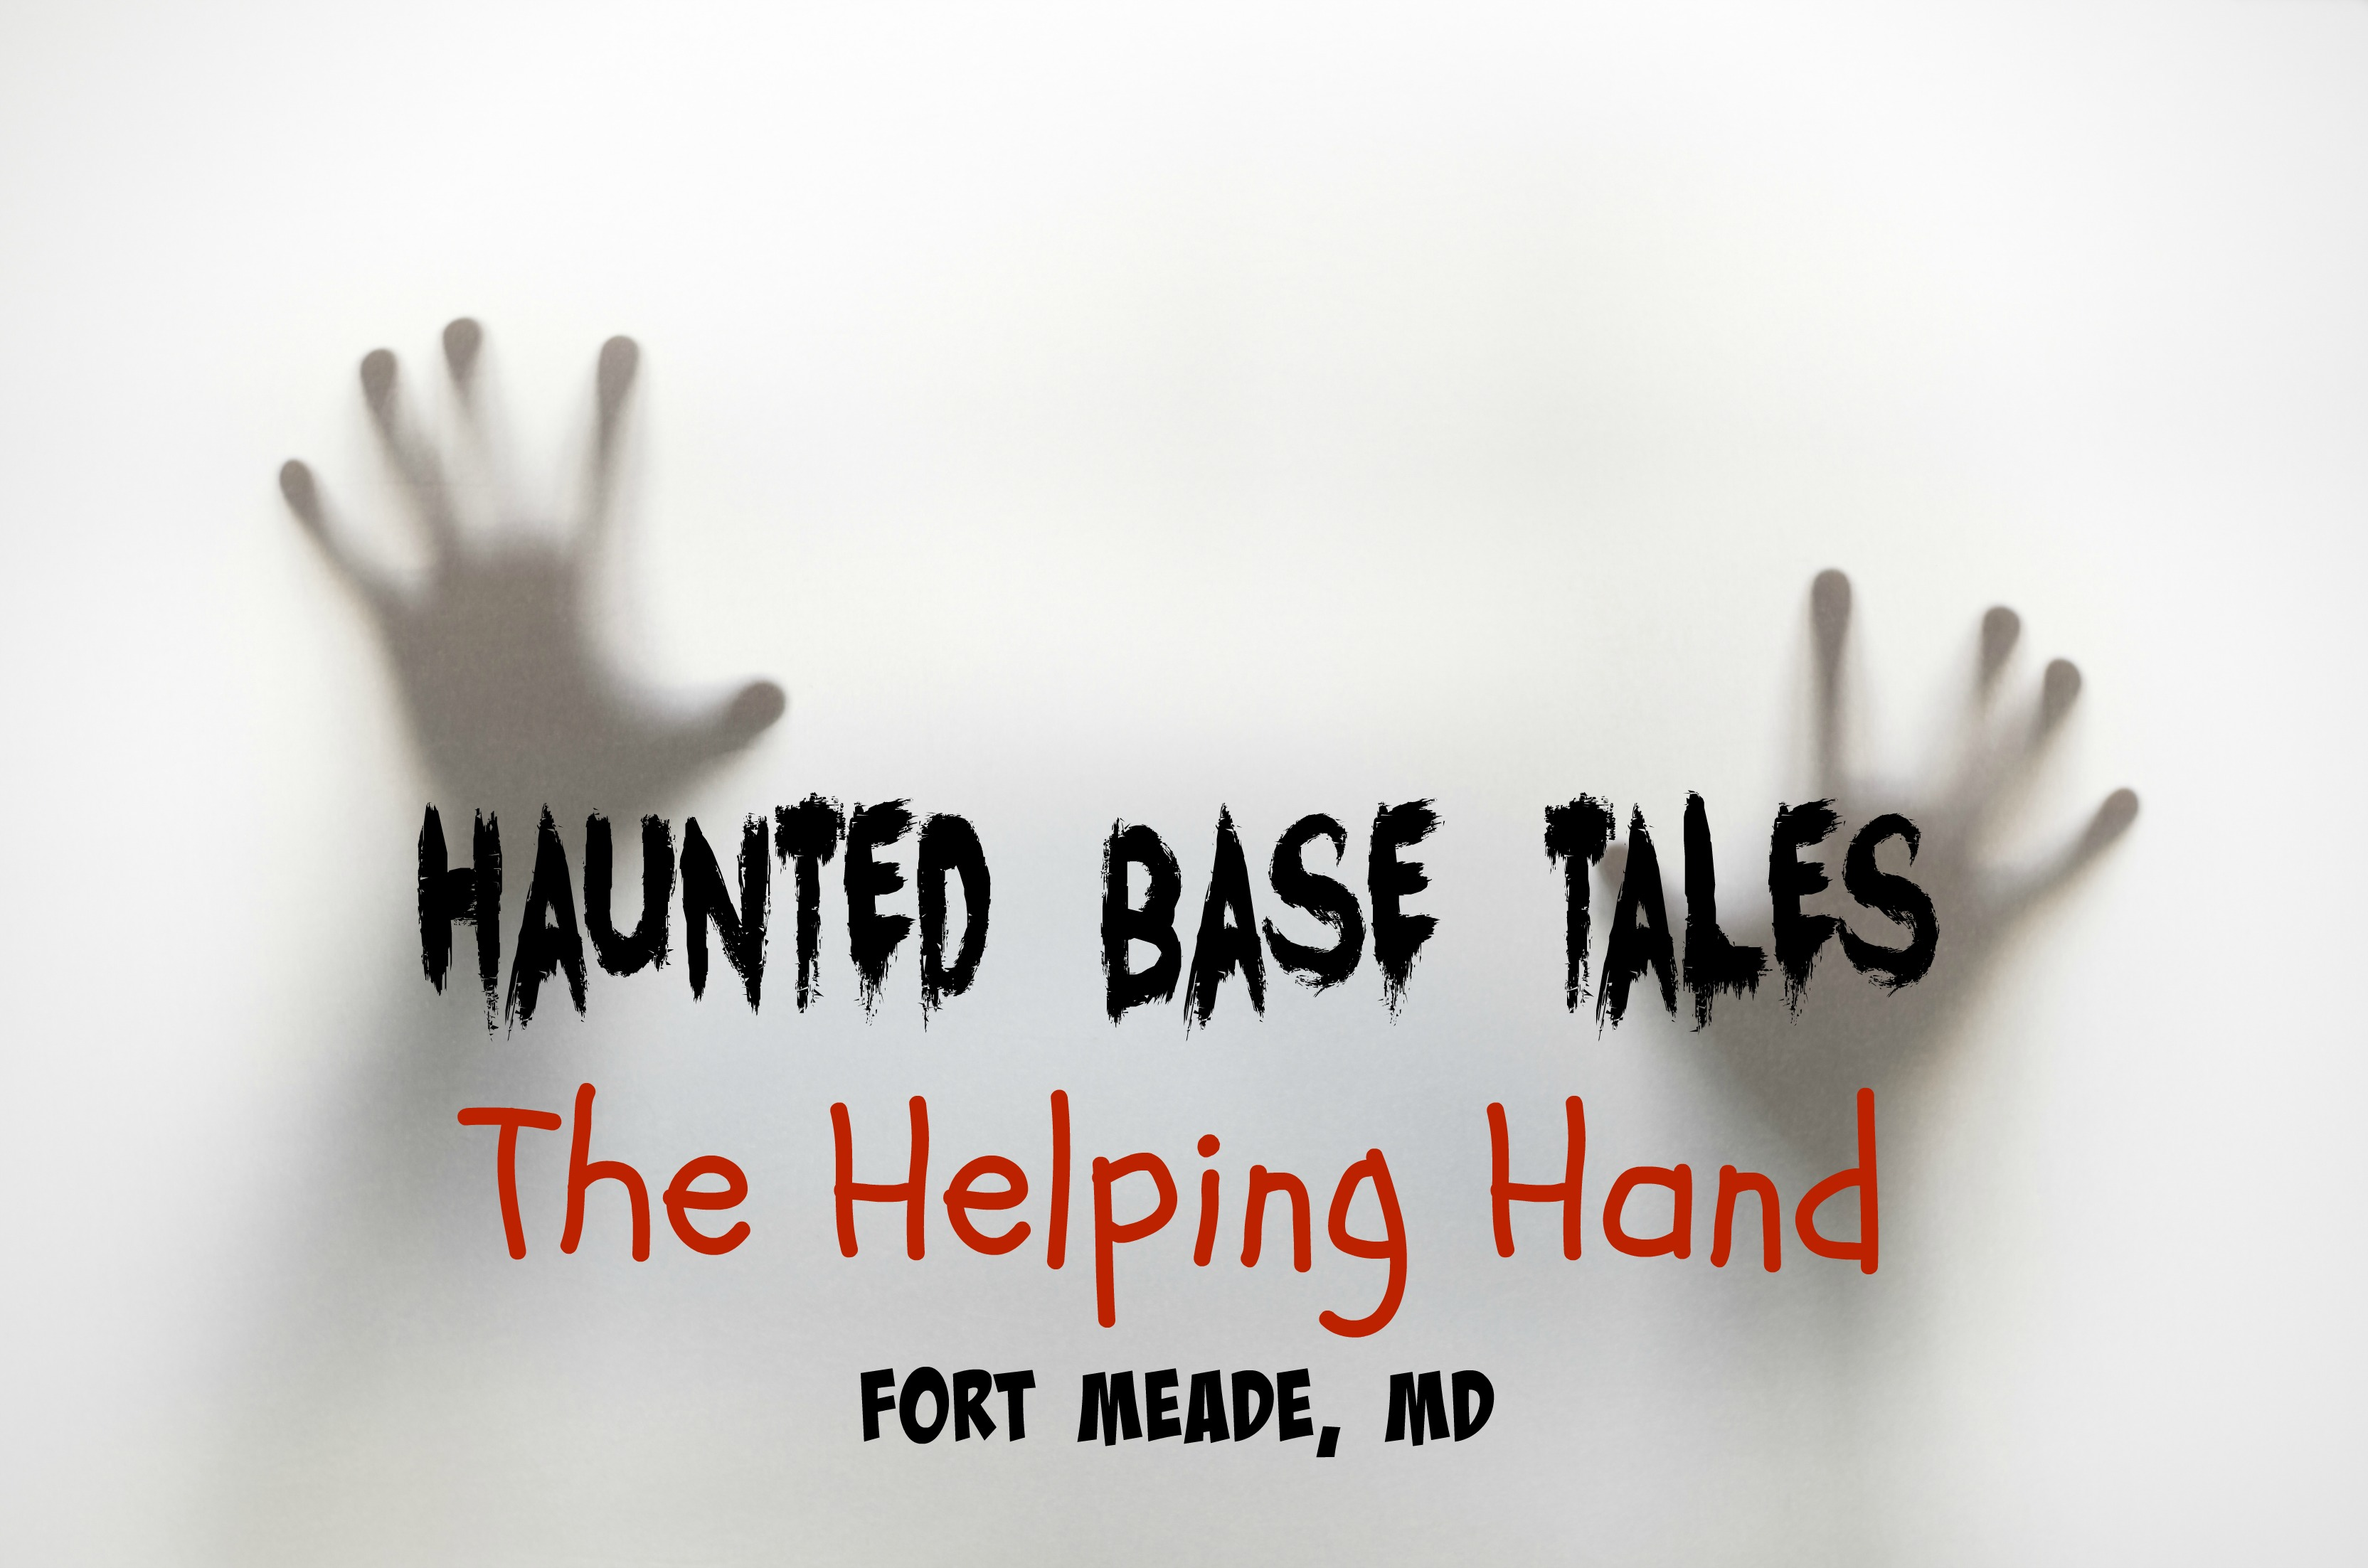 Haunted Base Tales — The Helping Hand, Fort Meade, MD